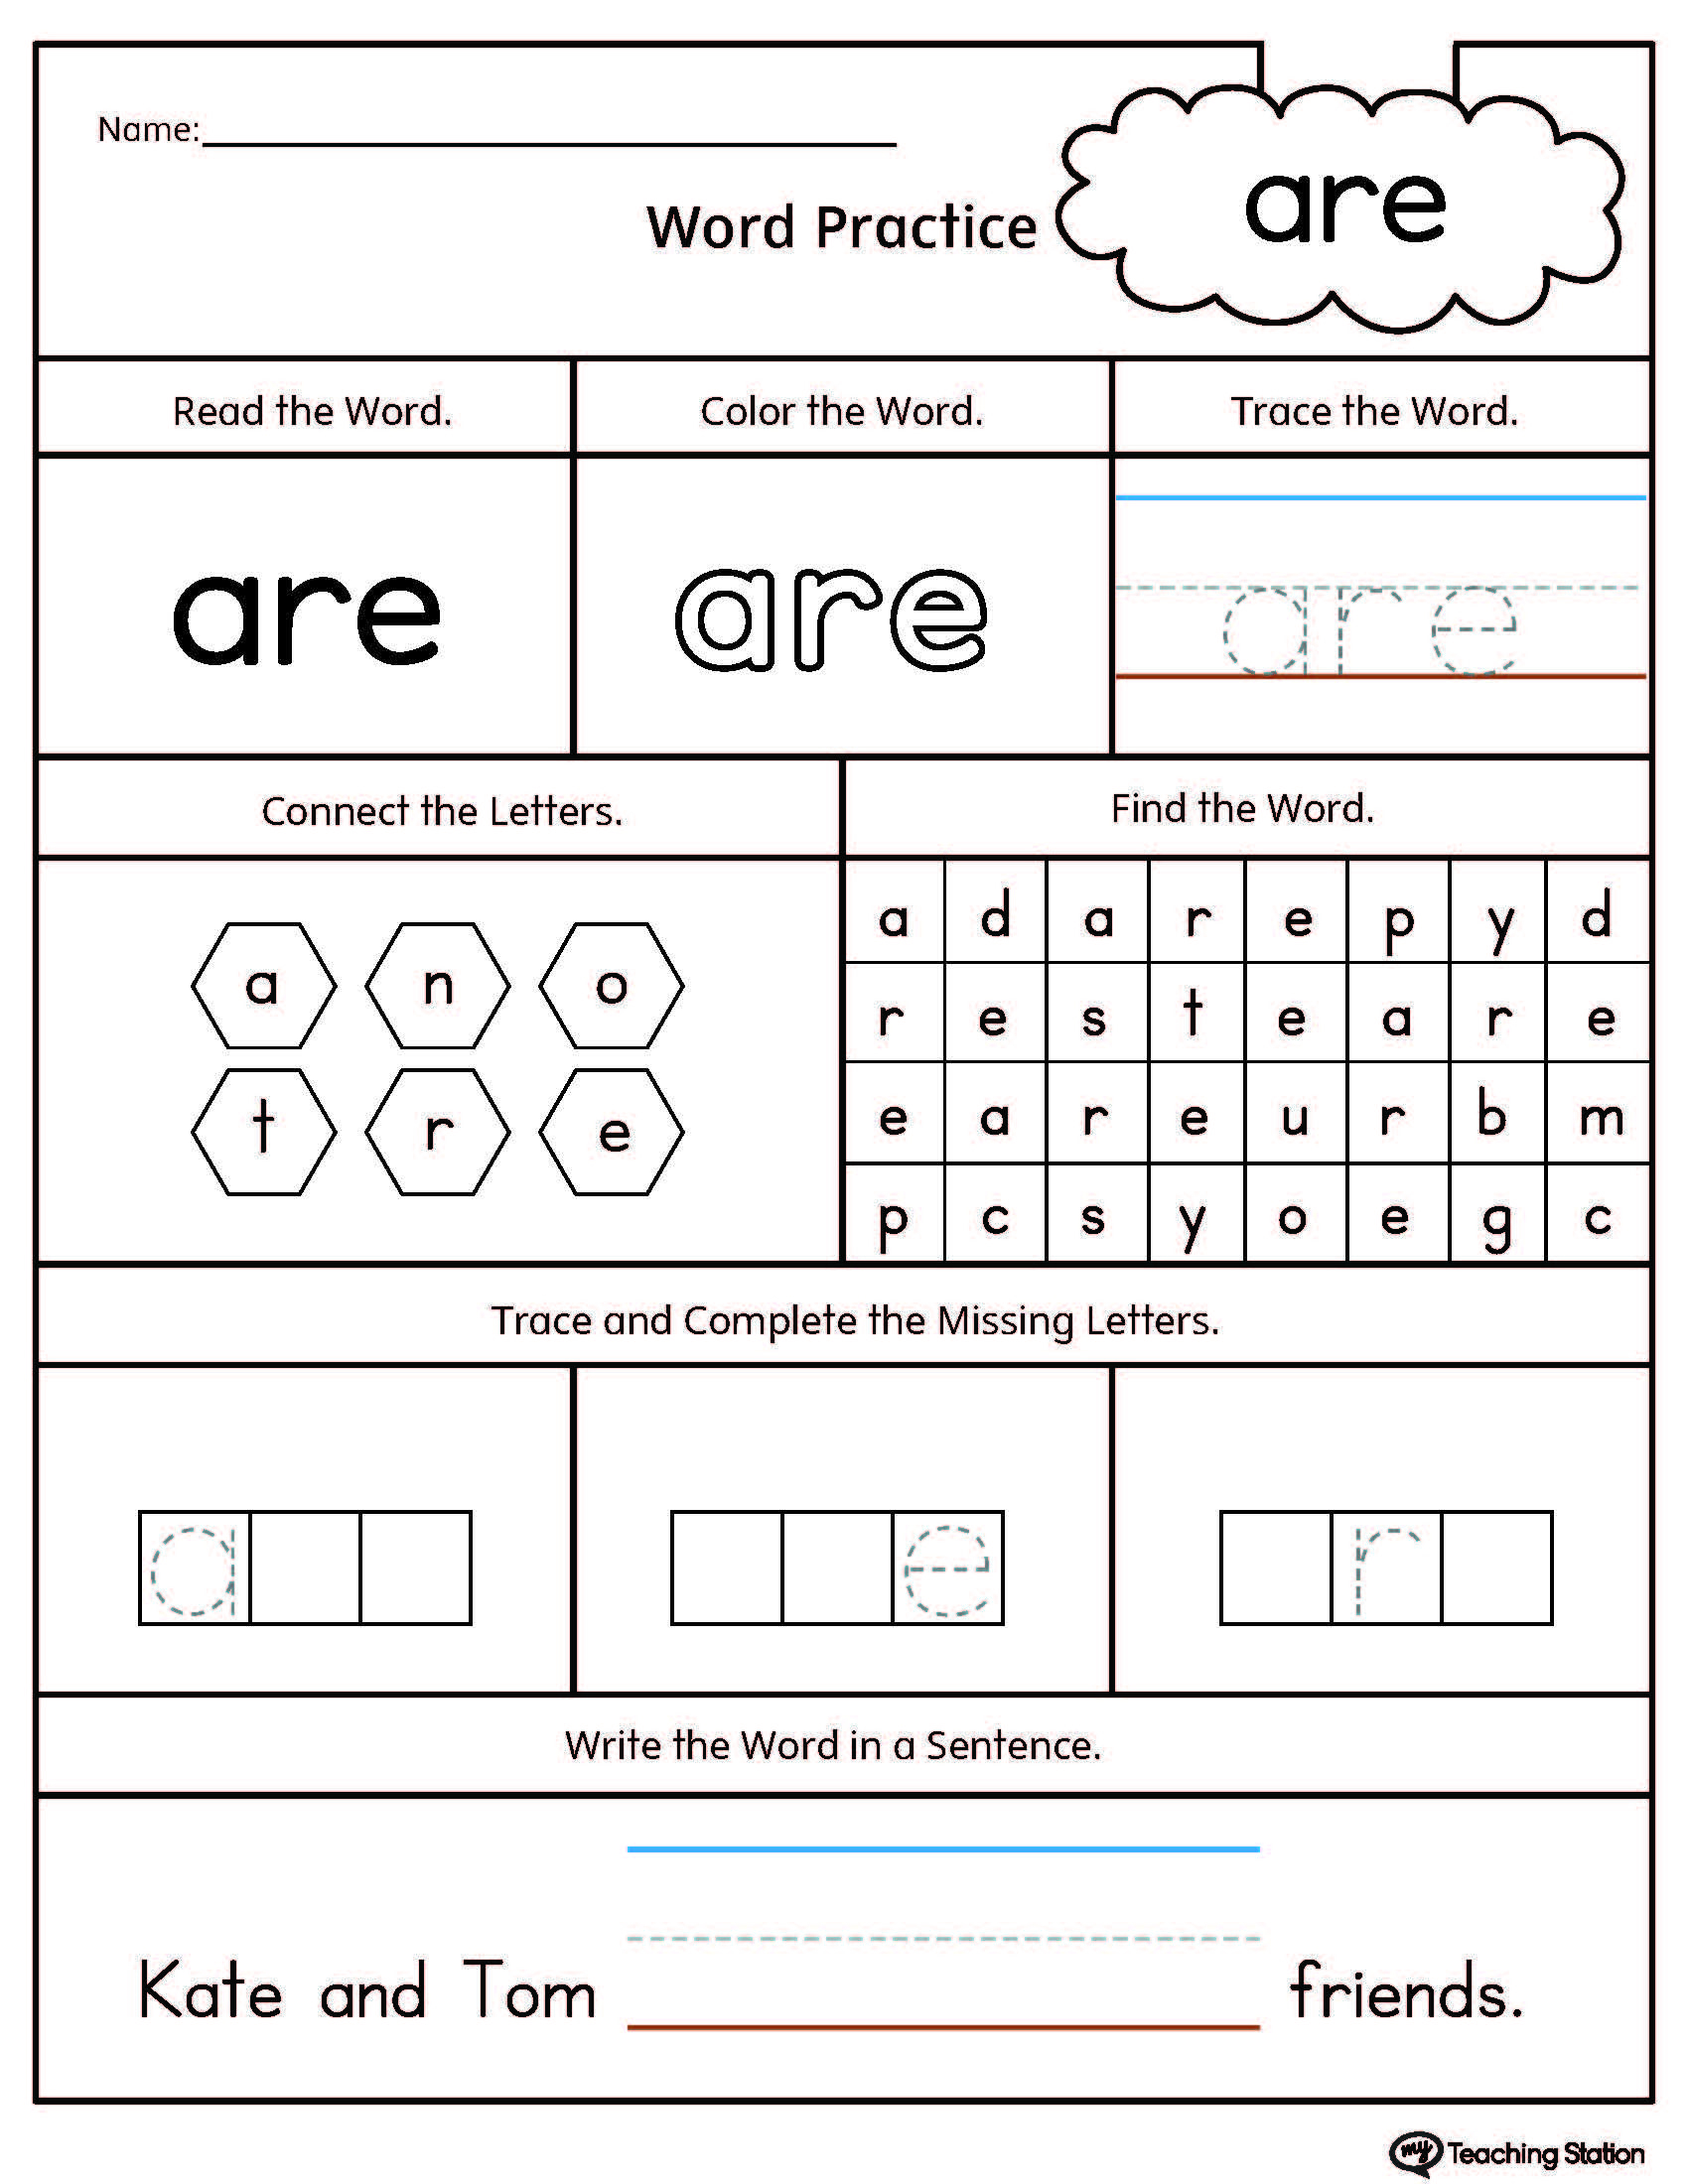 High-Frequency Word Are Printable Worksheet | Sight Word